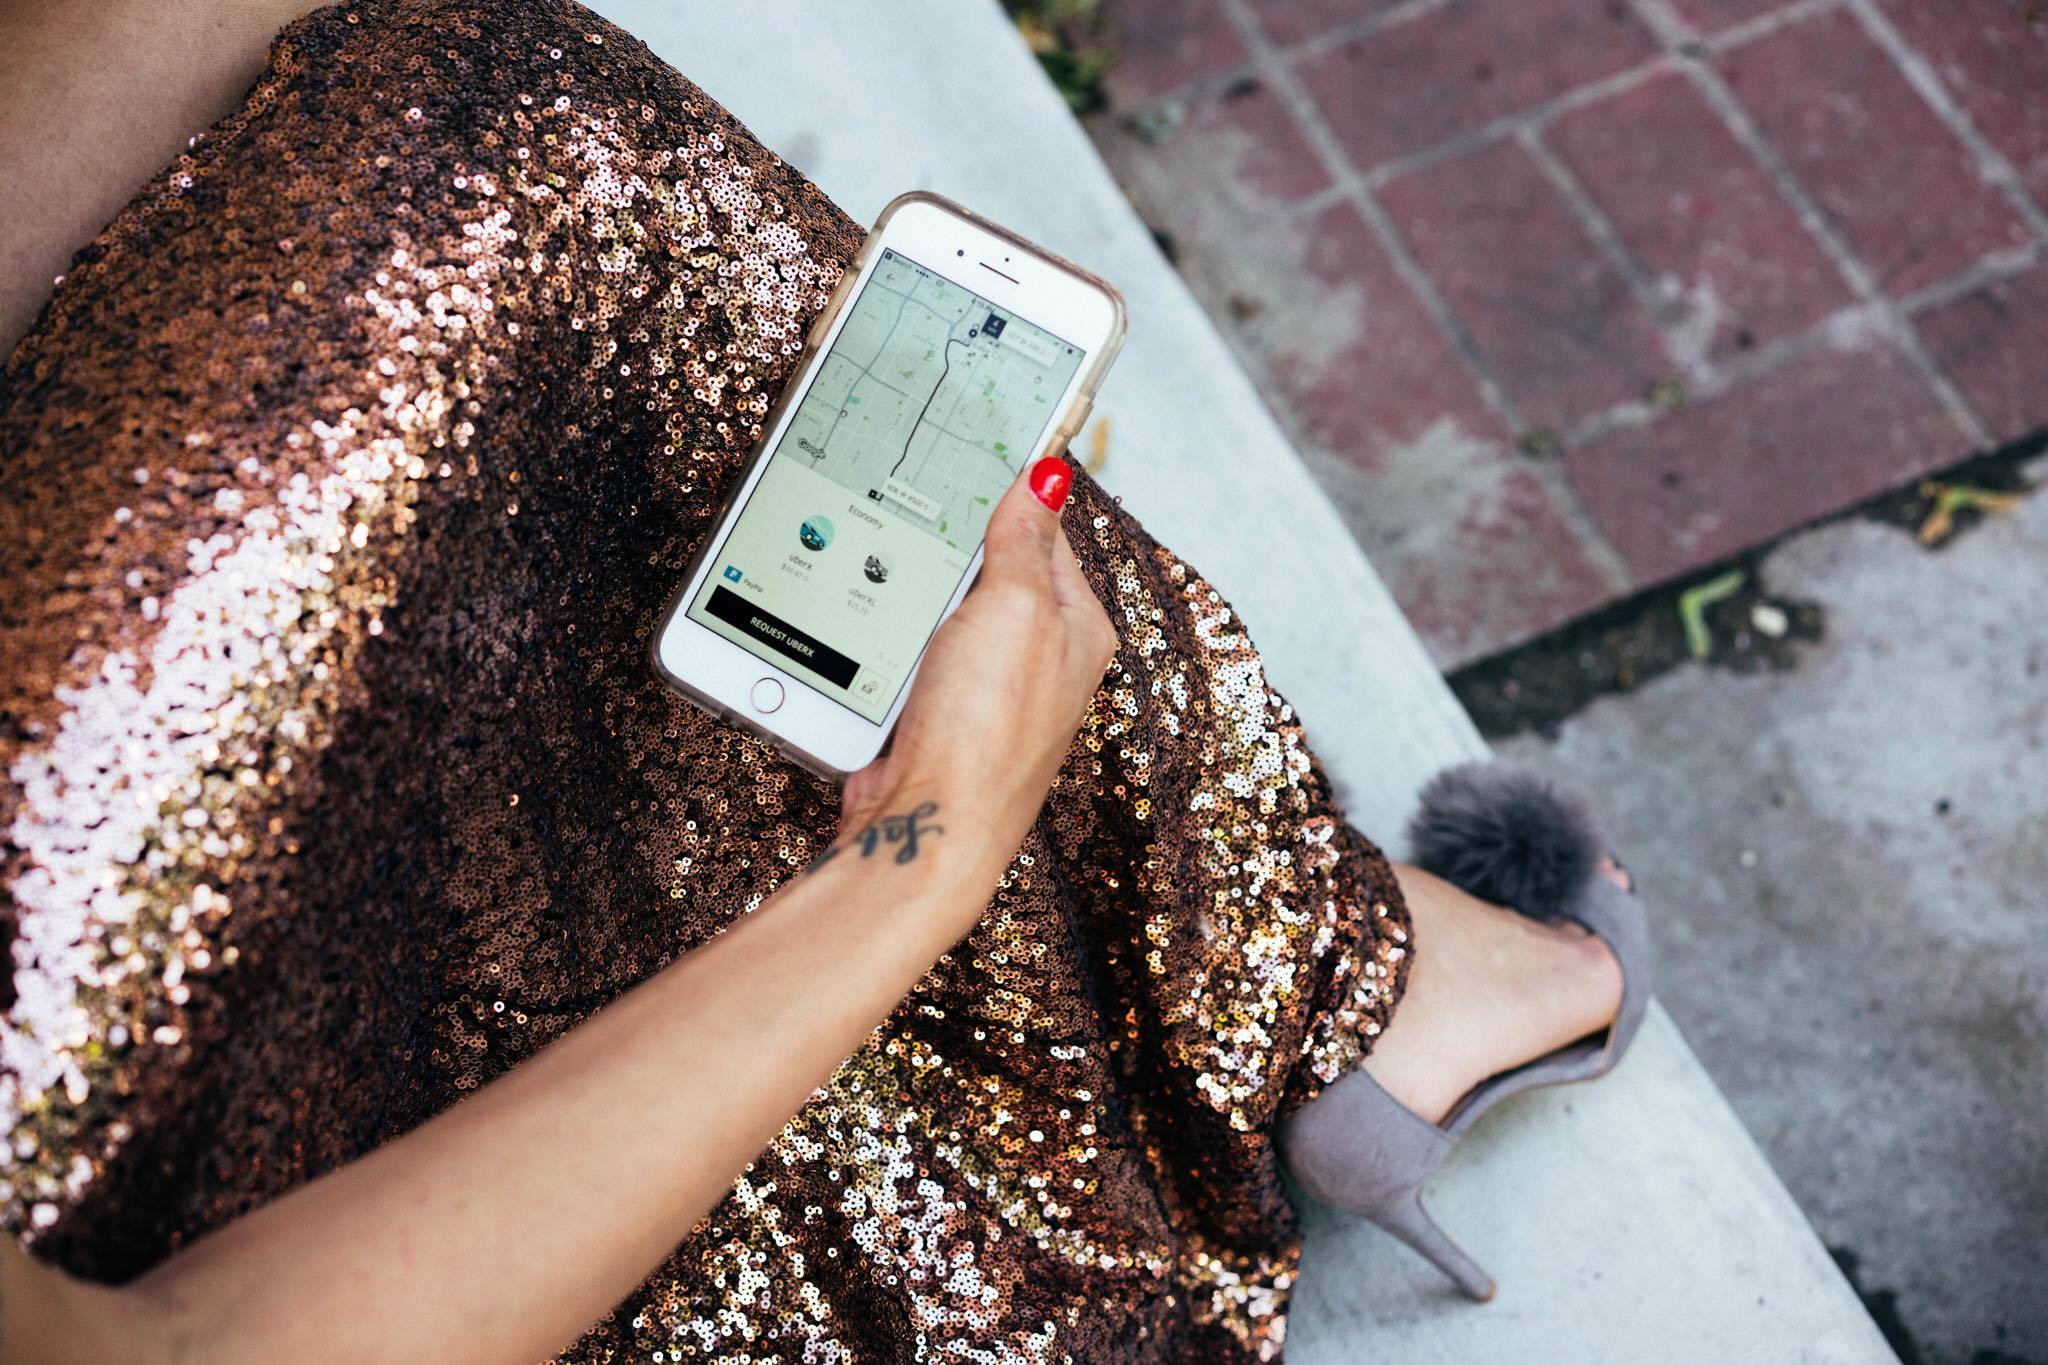 Using Uber: Navigating My Crazy Schedule with Uber by mom blogger Destiney of MomCrushMonday